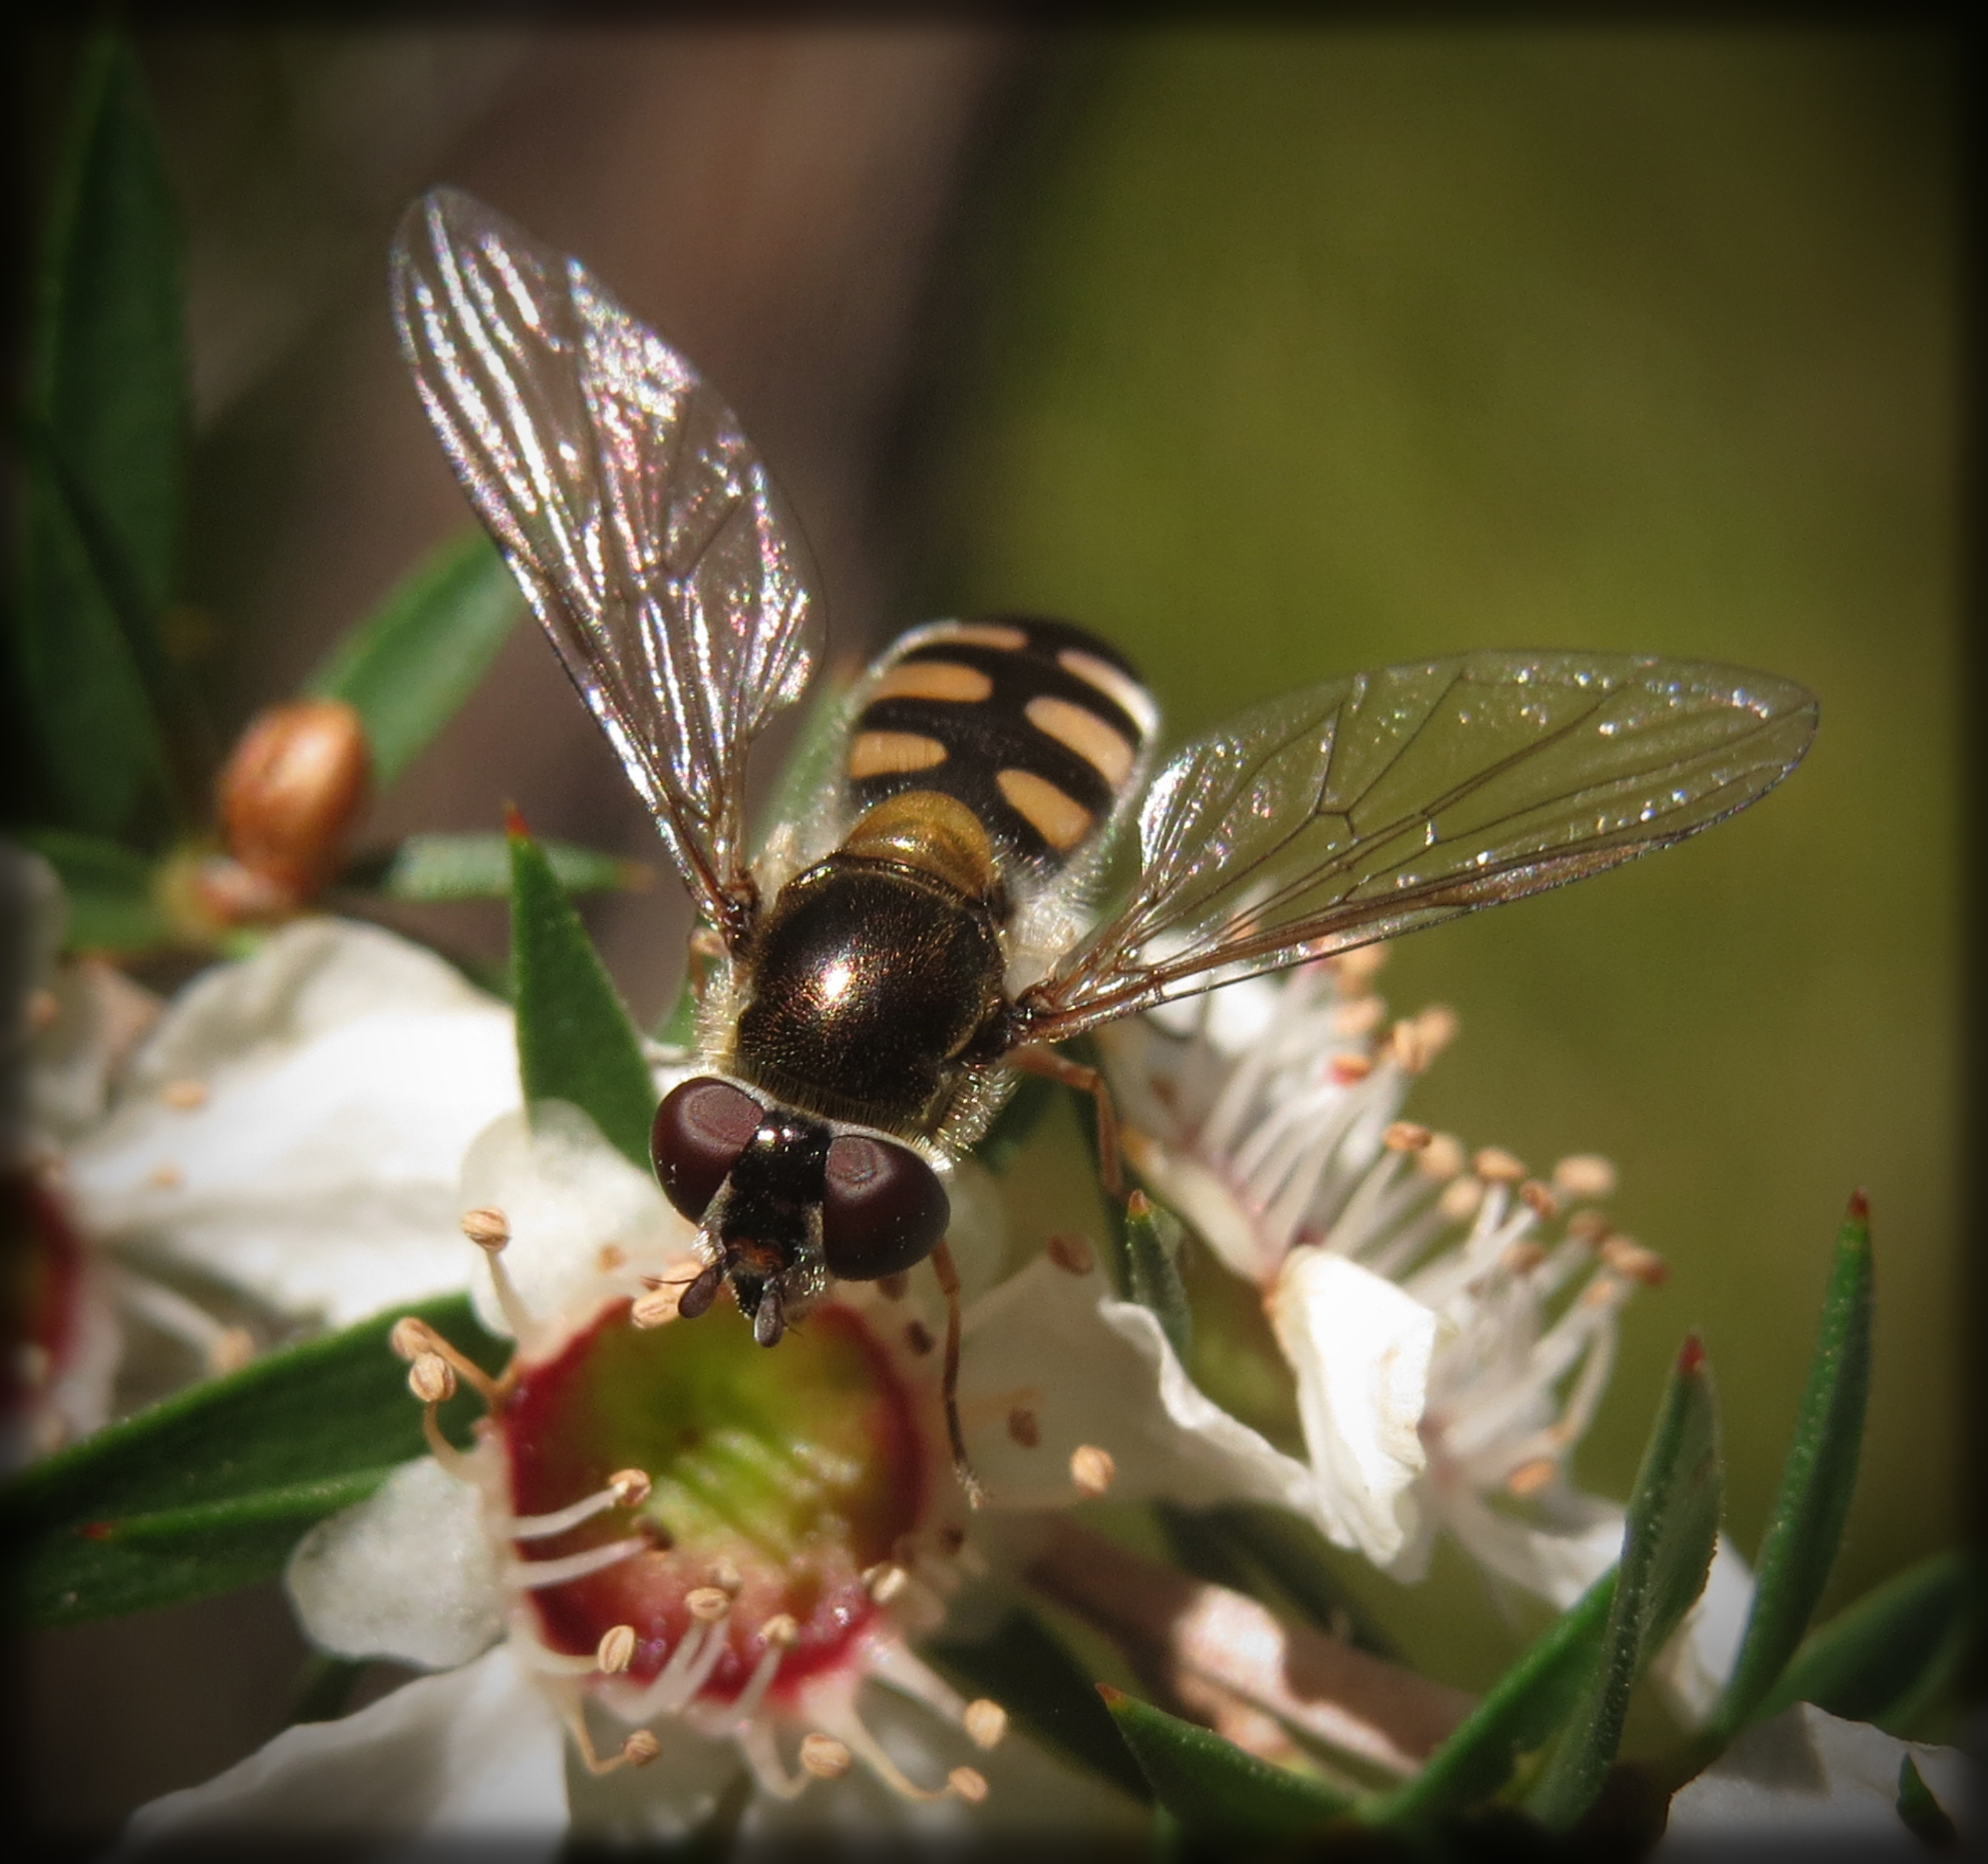 Common Hover Fly (Ischiodon scutellaris) on Prickly Teatree (Leptospermum continentale)